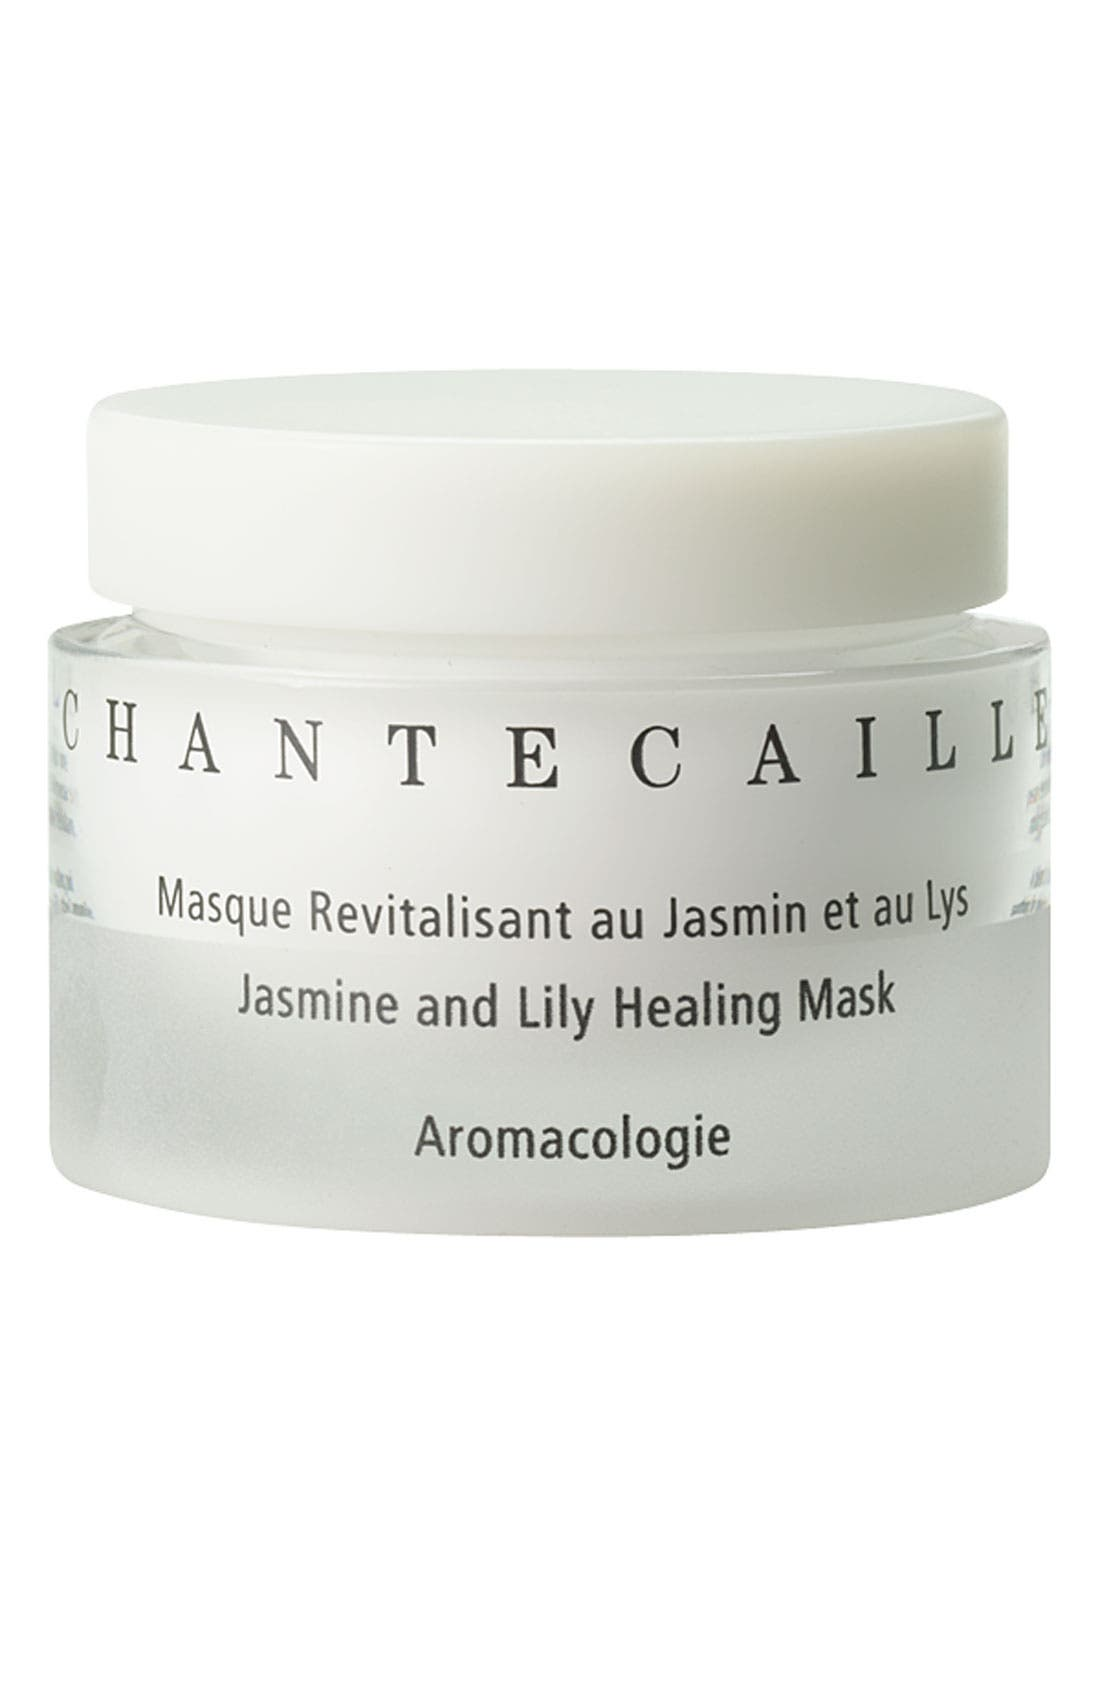 Jasmine and Lily Healing Mask,                         Main,                         color, NO COLOR